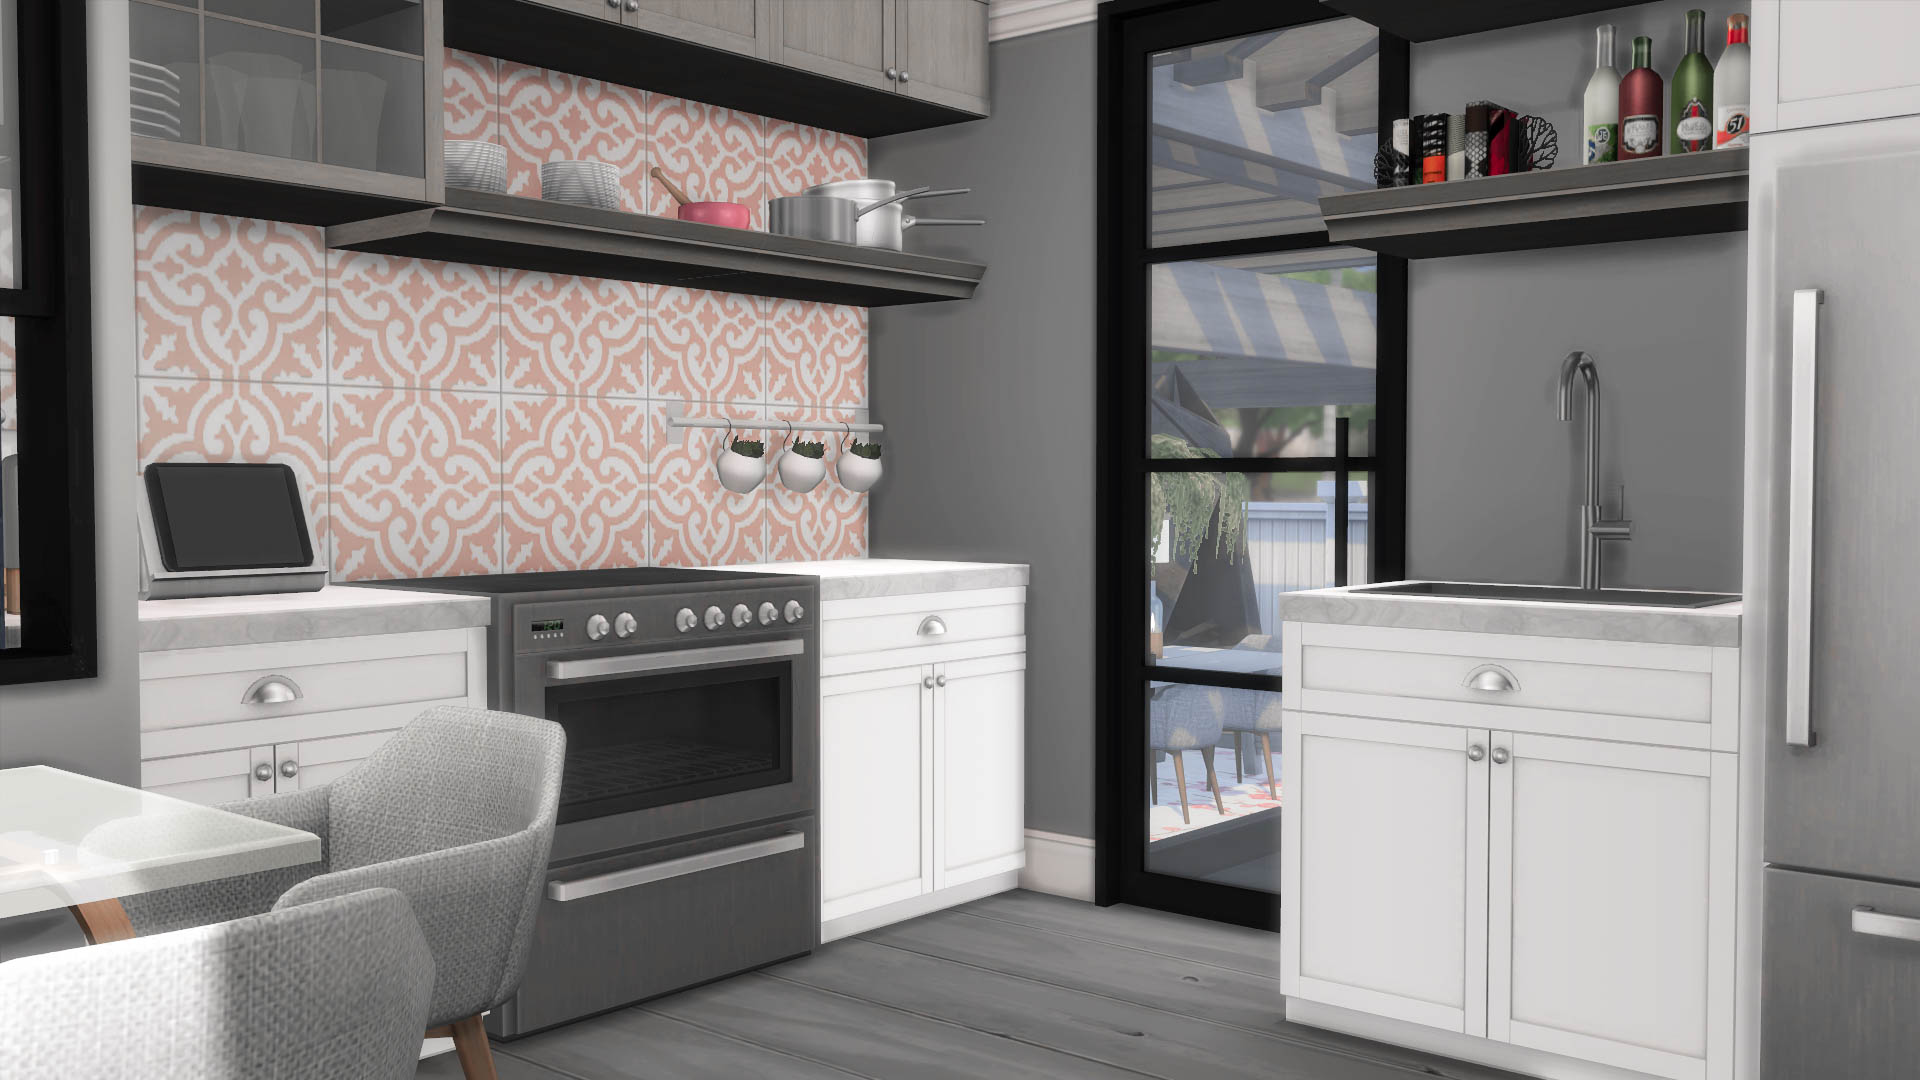 Tiny House Love 5 Tips For Building With The Sims 4 Tiny Living Pack Girly Geek Blog